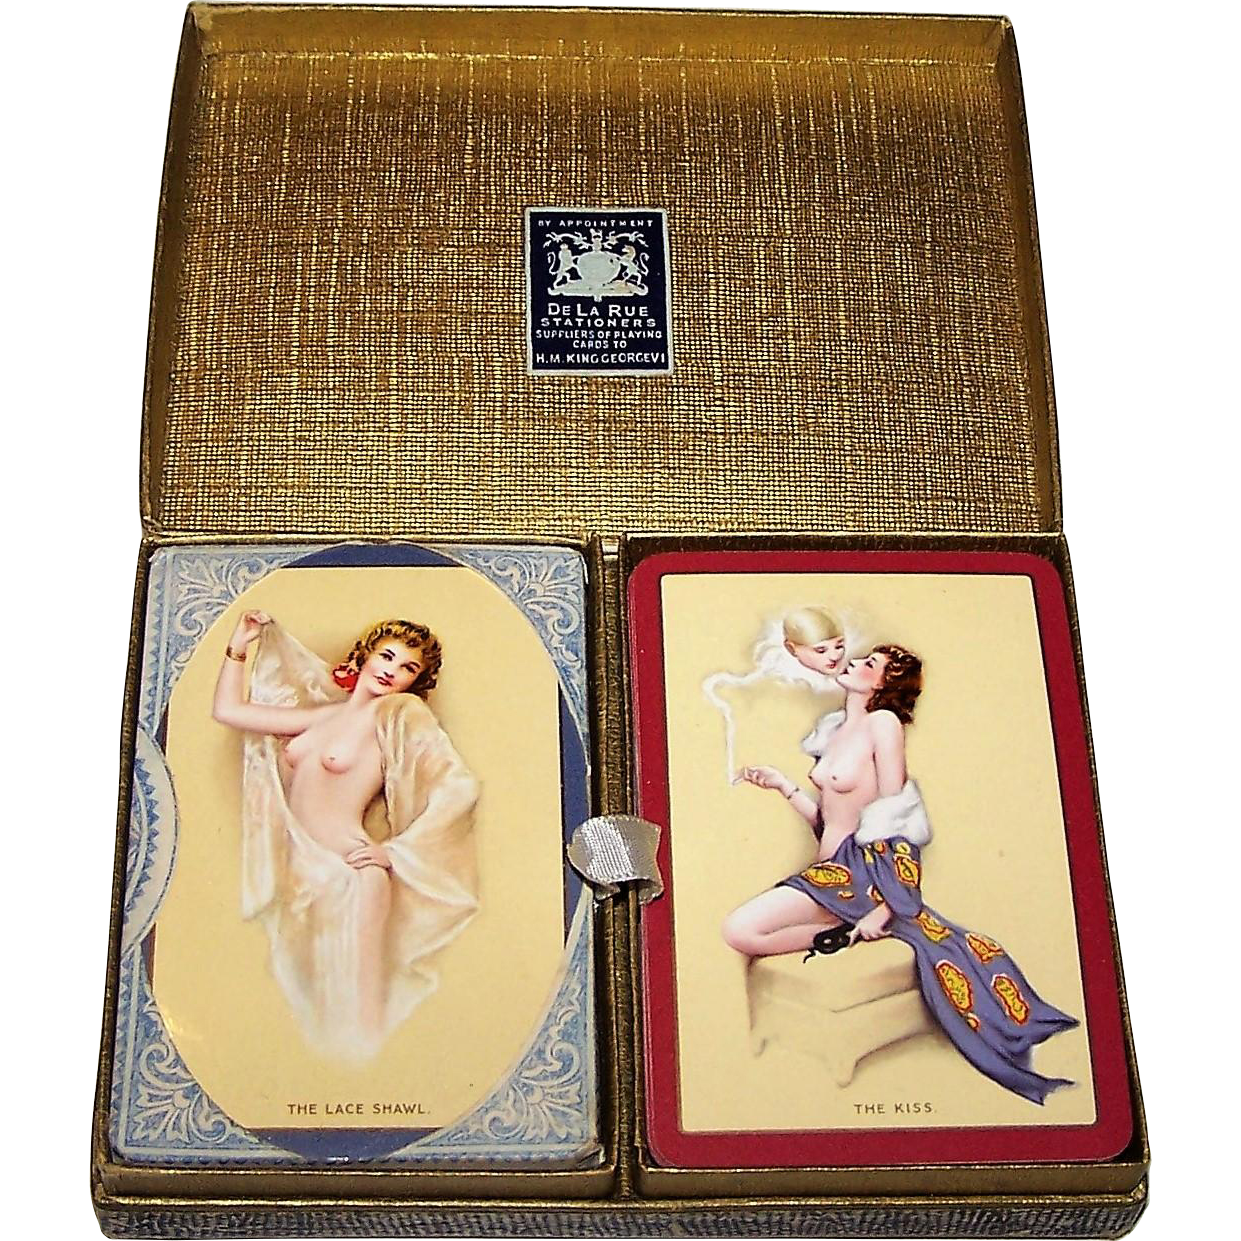 "Double Deck Goodall Boudoir ""The Kiss"" and ""The Lace Shawl"" Pin-Up Playing Cards, Raphael Soyer Designs, c.1926"